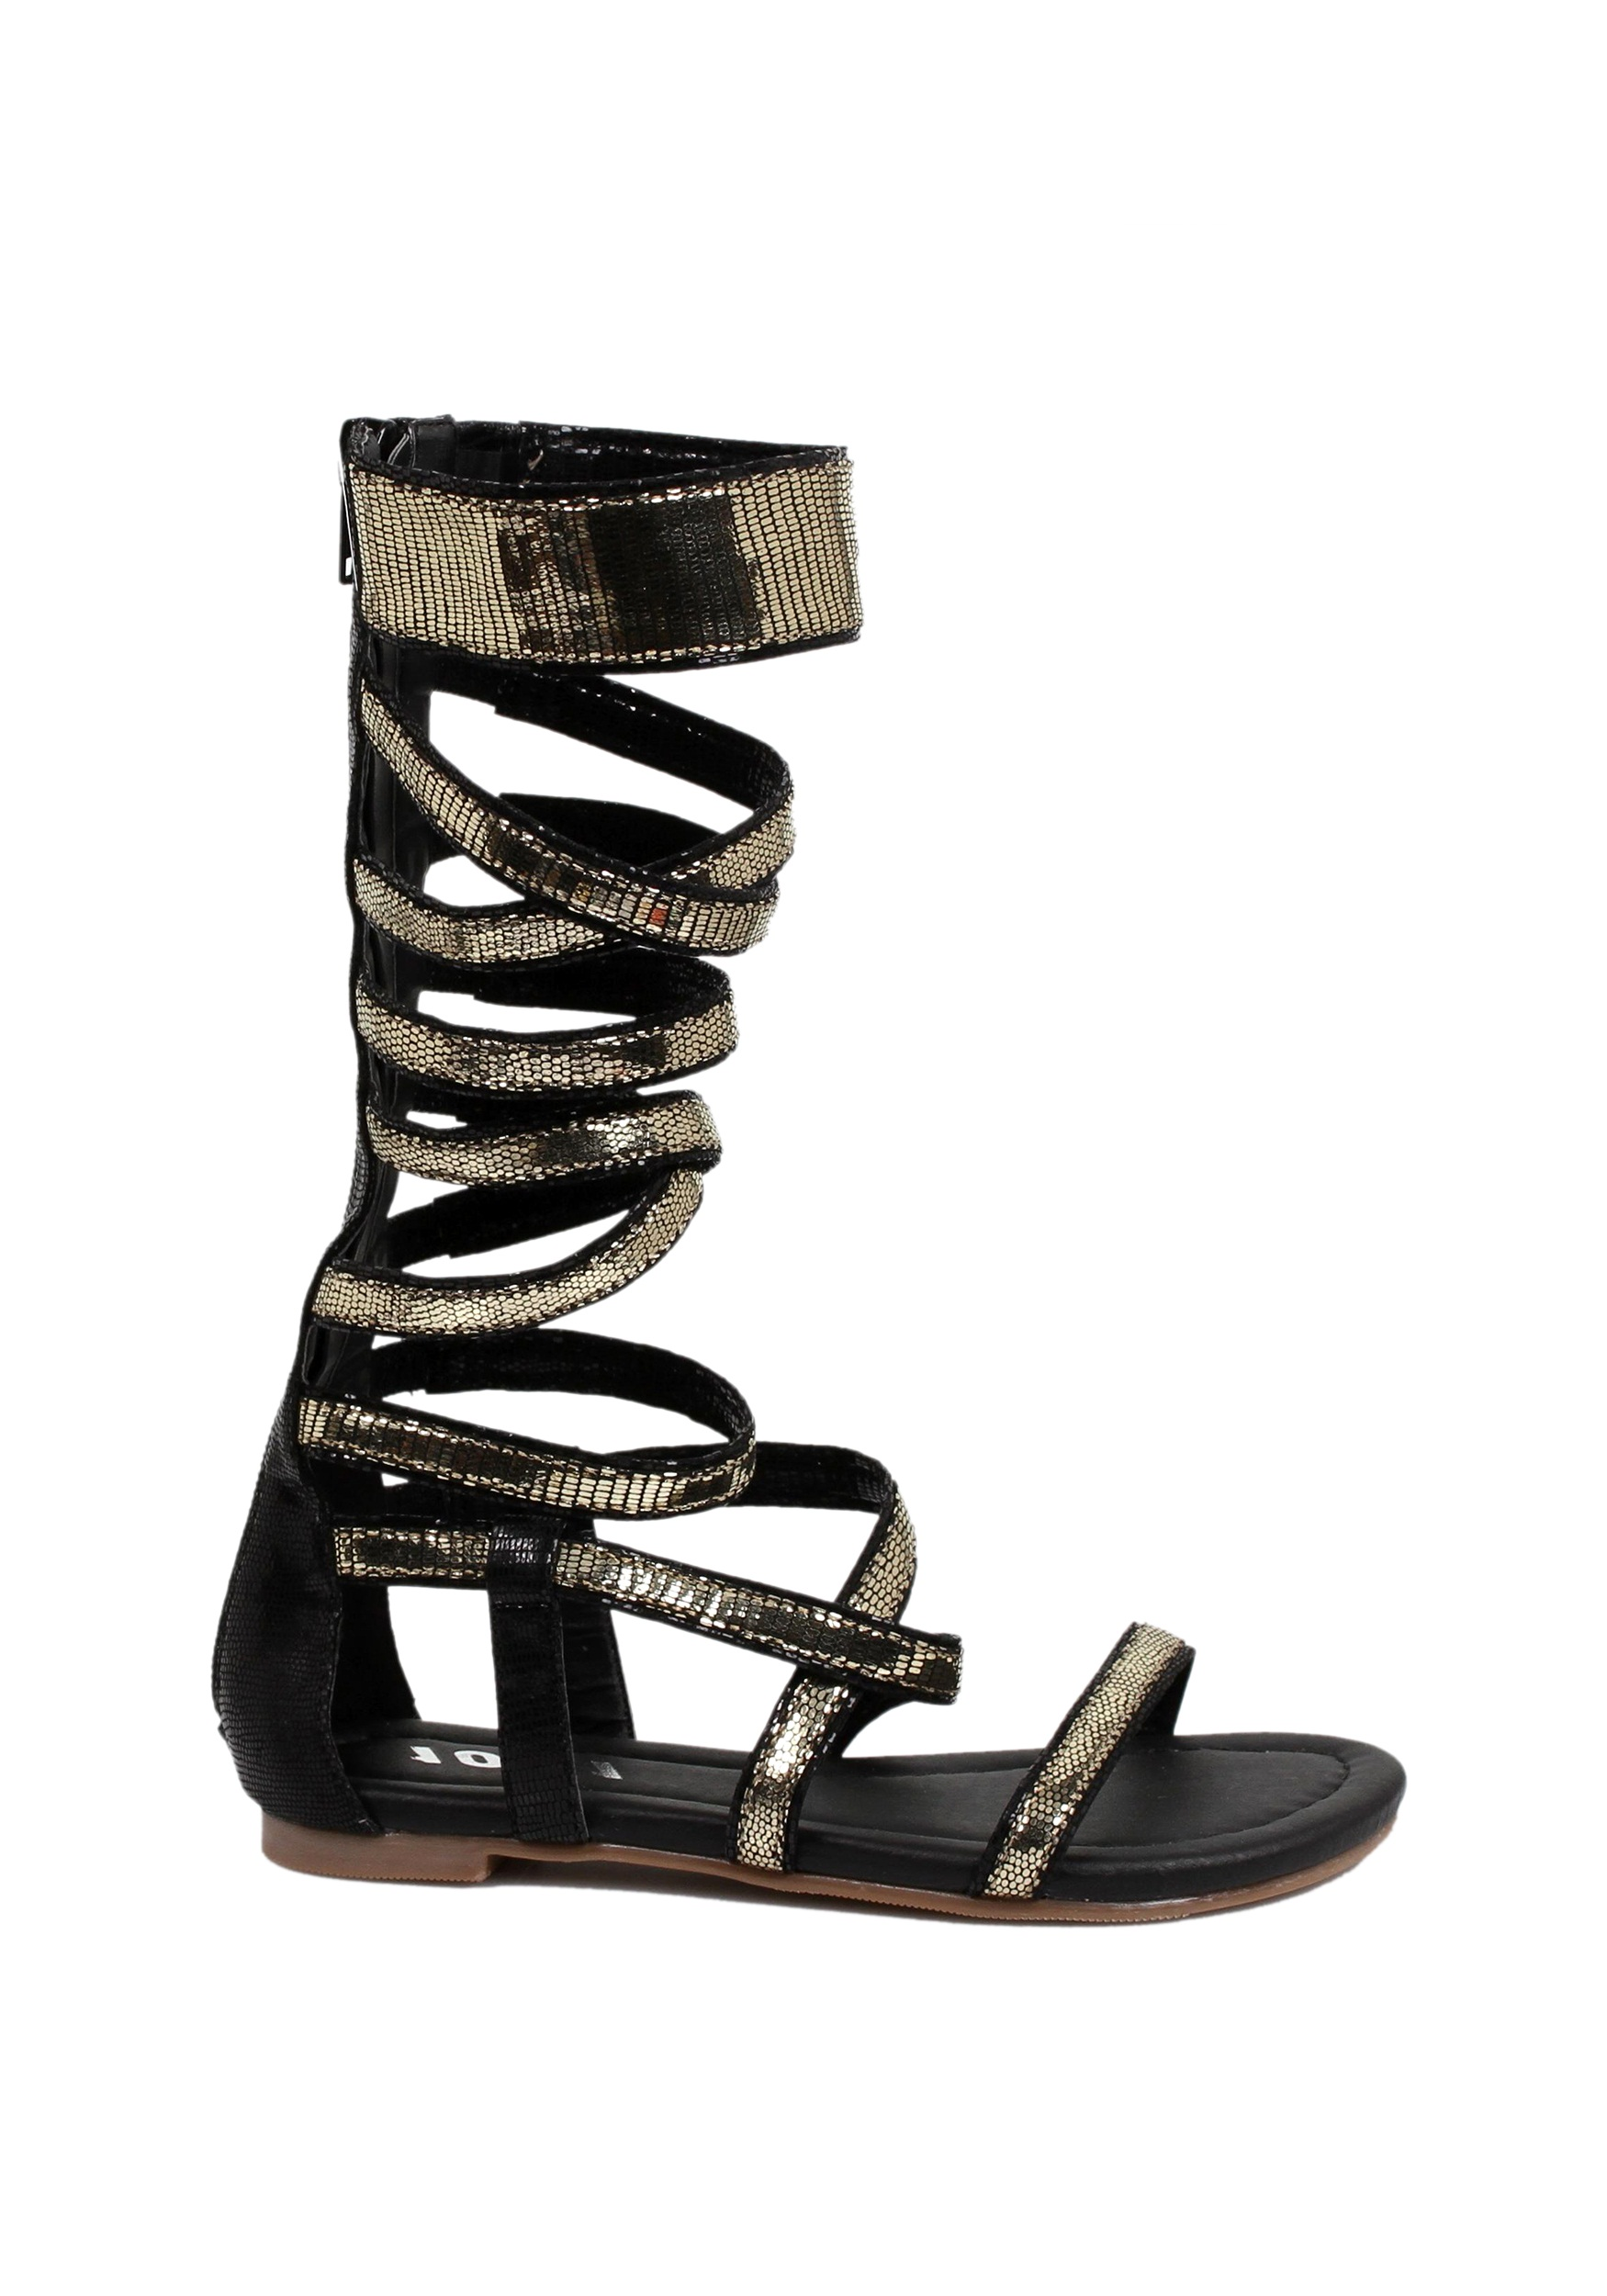 Adult Warrior Sandals